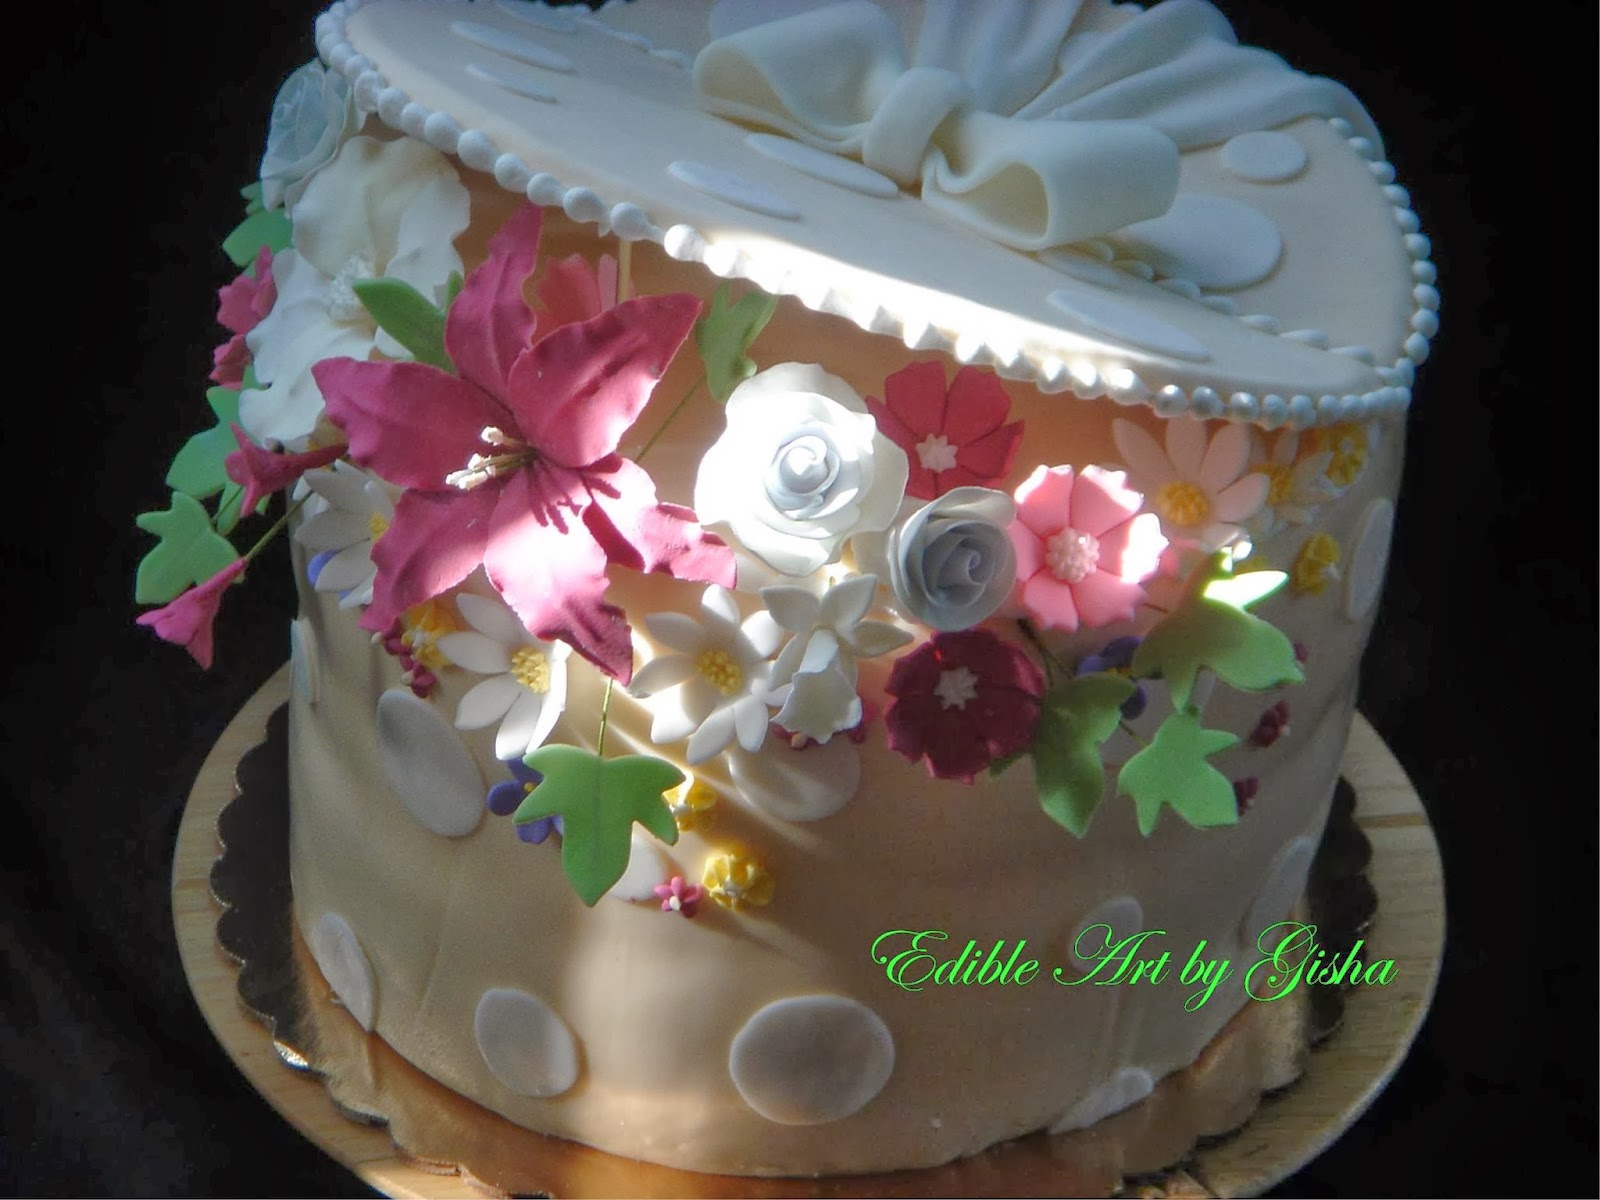 Edible Art By Gisha Pucheta Not Geisha Boxes And